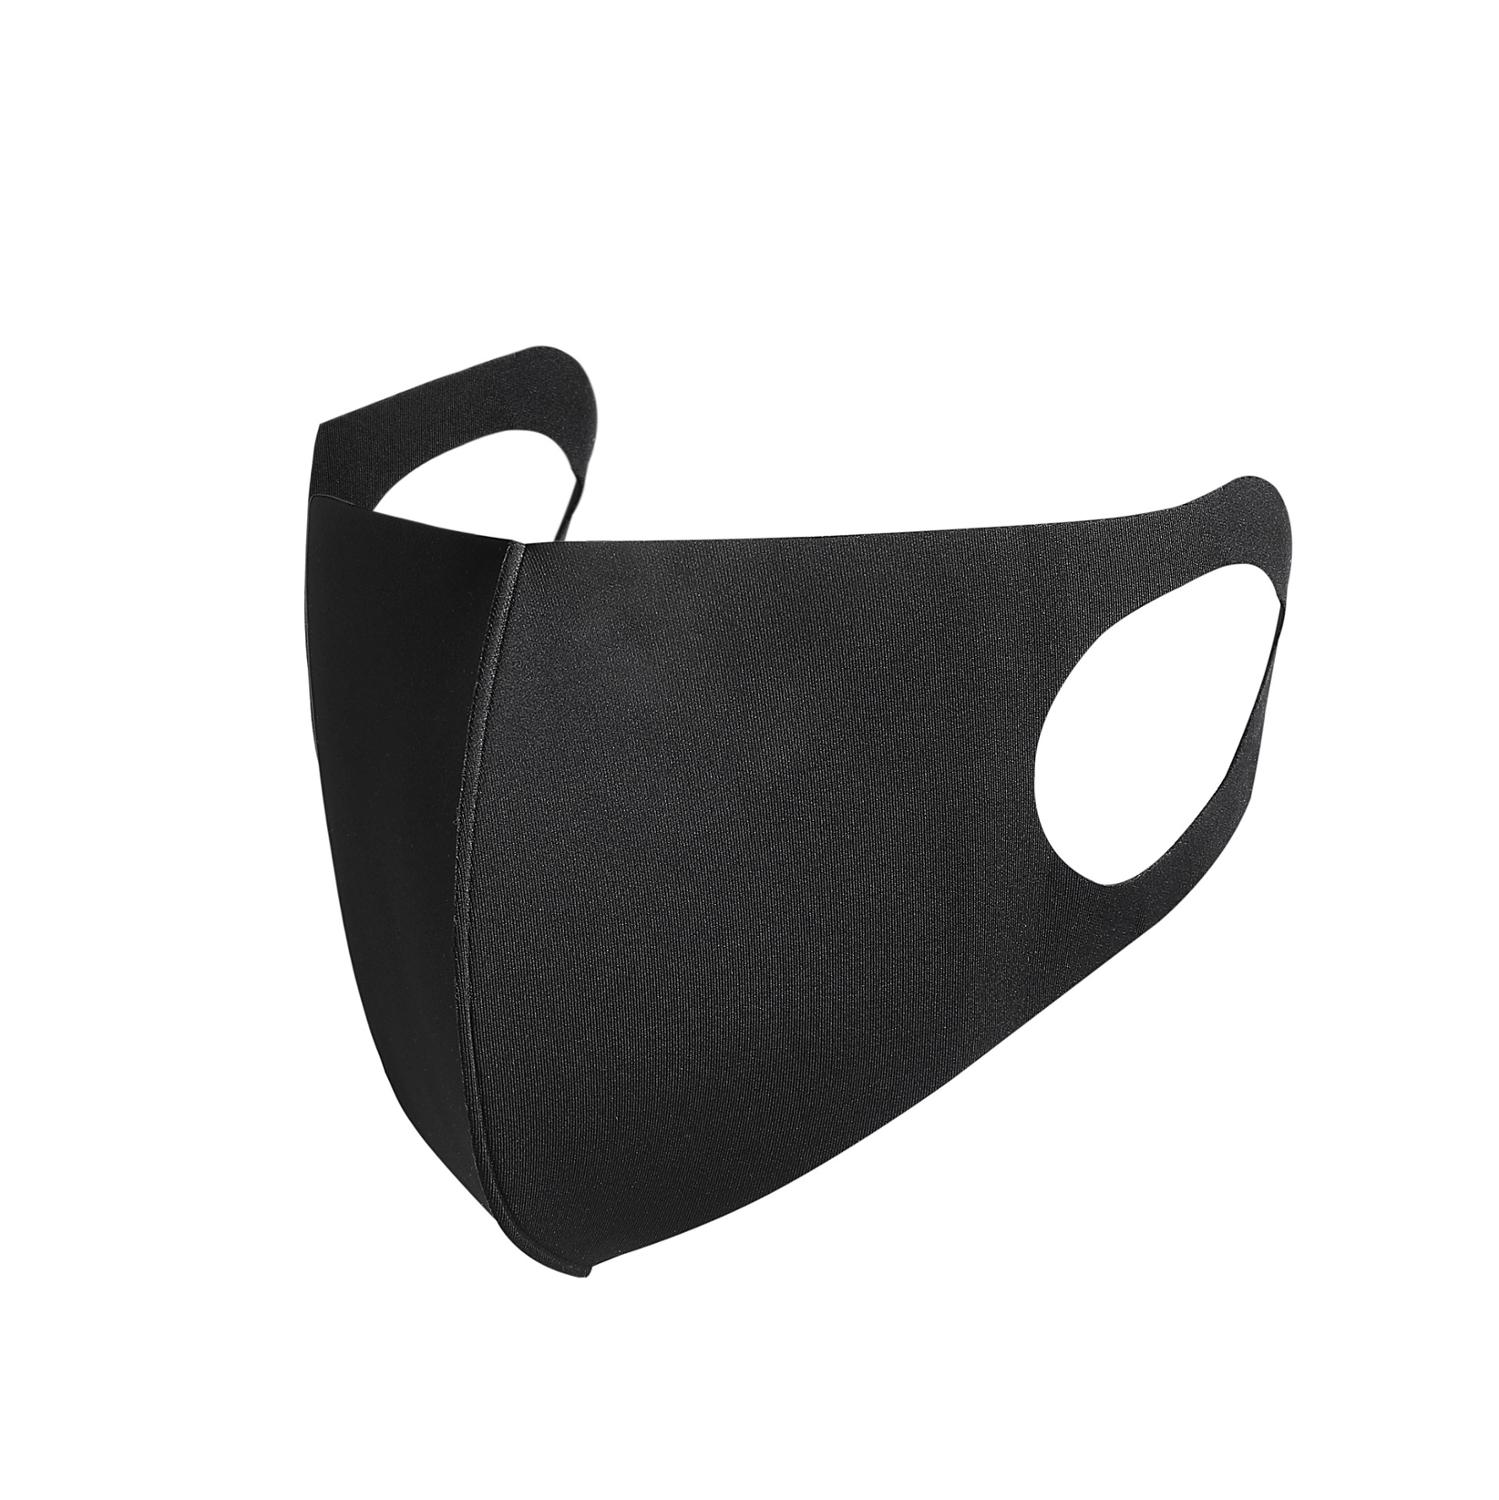 Nano-polyurethane Black Mouth Mask Anti Dust Mask Breathable And Washable For Children Bacteria Proof Flu Face Masks